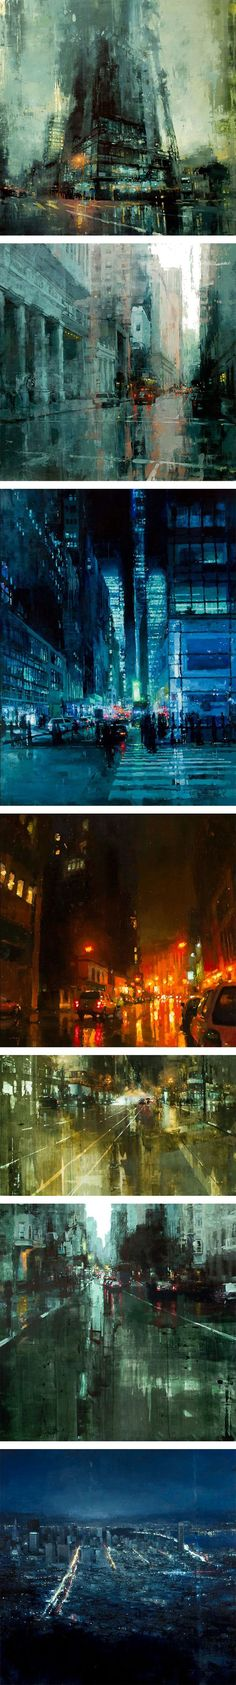 San Francisco-based artist Jeremy Mann lives and works in San Francisco where he executes these sublime, moody cityscapes using oil paints. To create each work he relies on a wide range of techniqu…